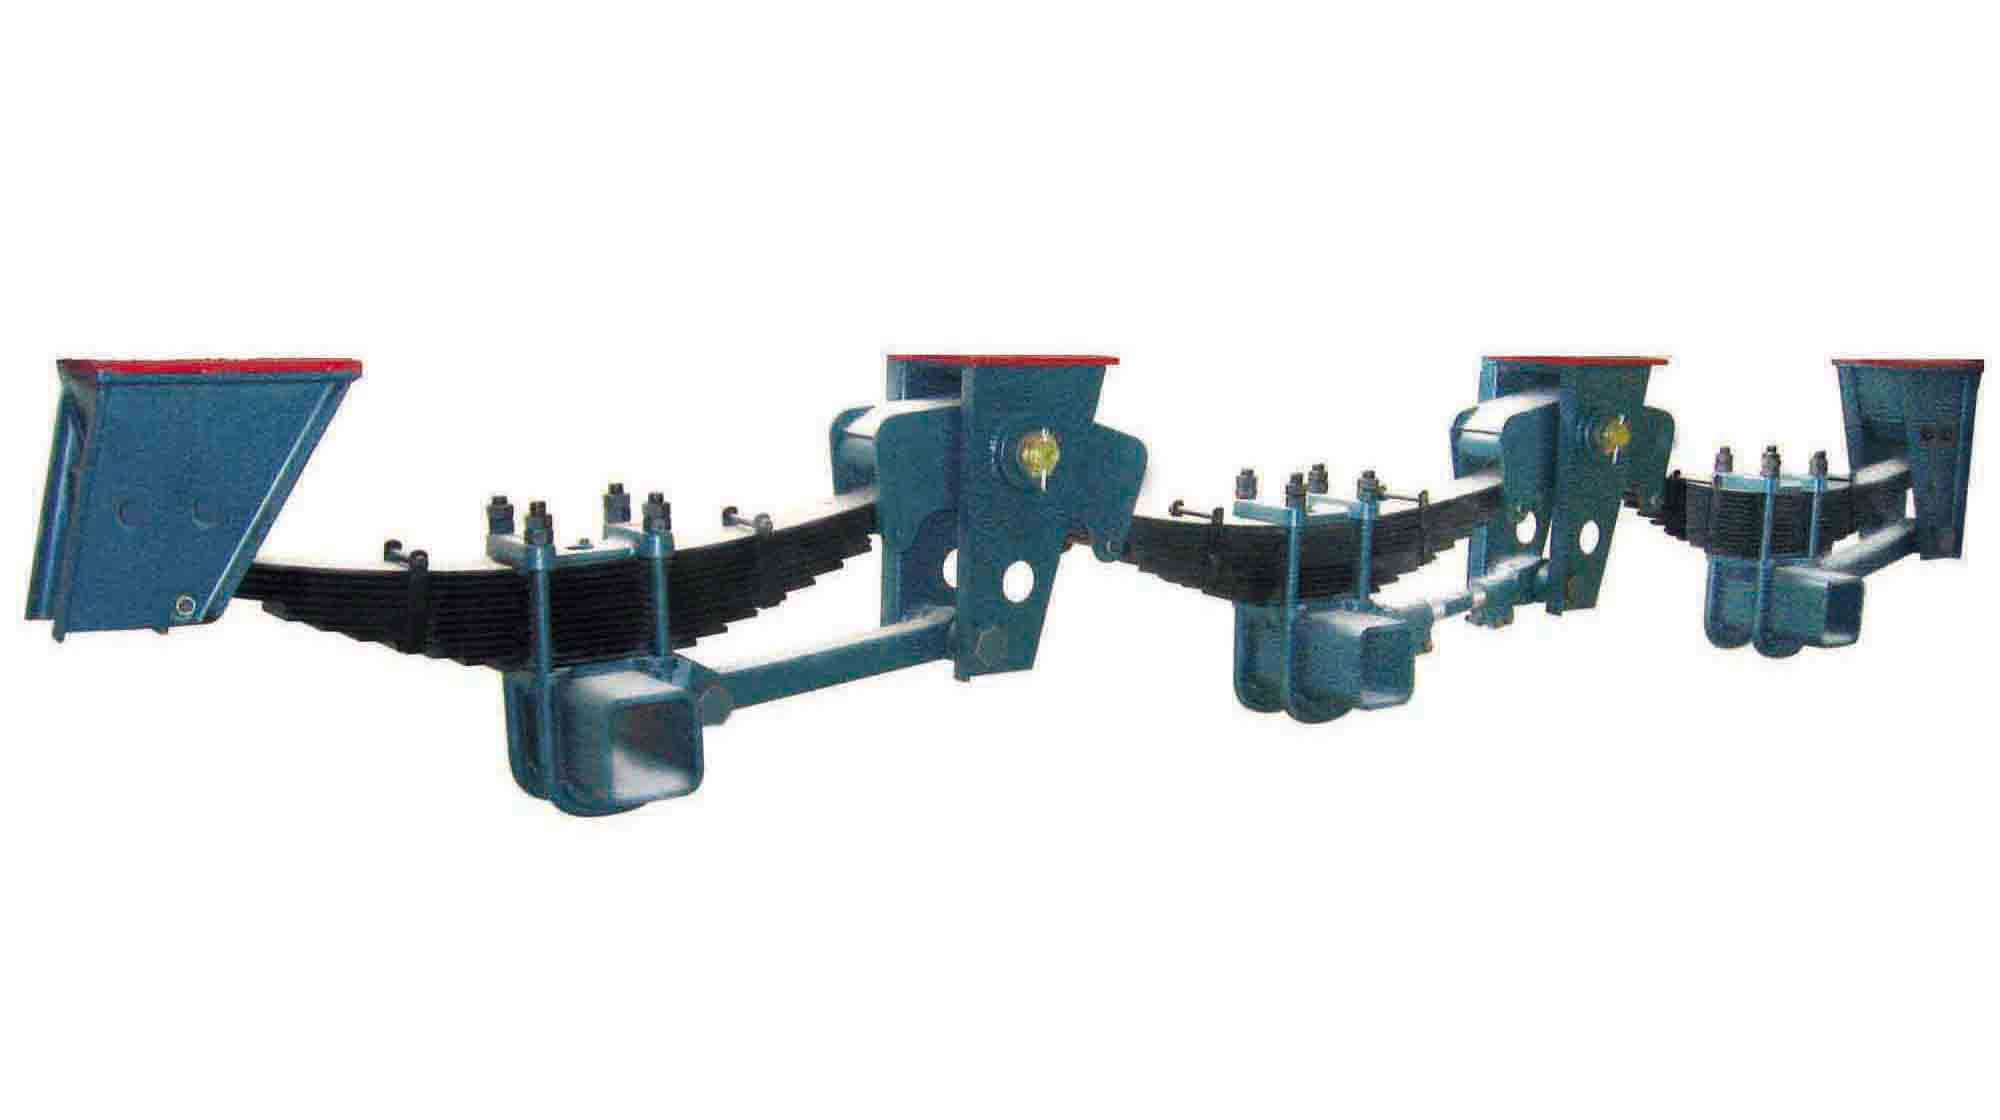 Semi trailer axle mechanical underslung suspension semi trailer semi trailer axle mechanical underslung suspension semi trailer axle mechanical underslung suspension suppliers and manufacturers at alibaba pooptronica Images